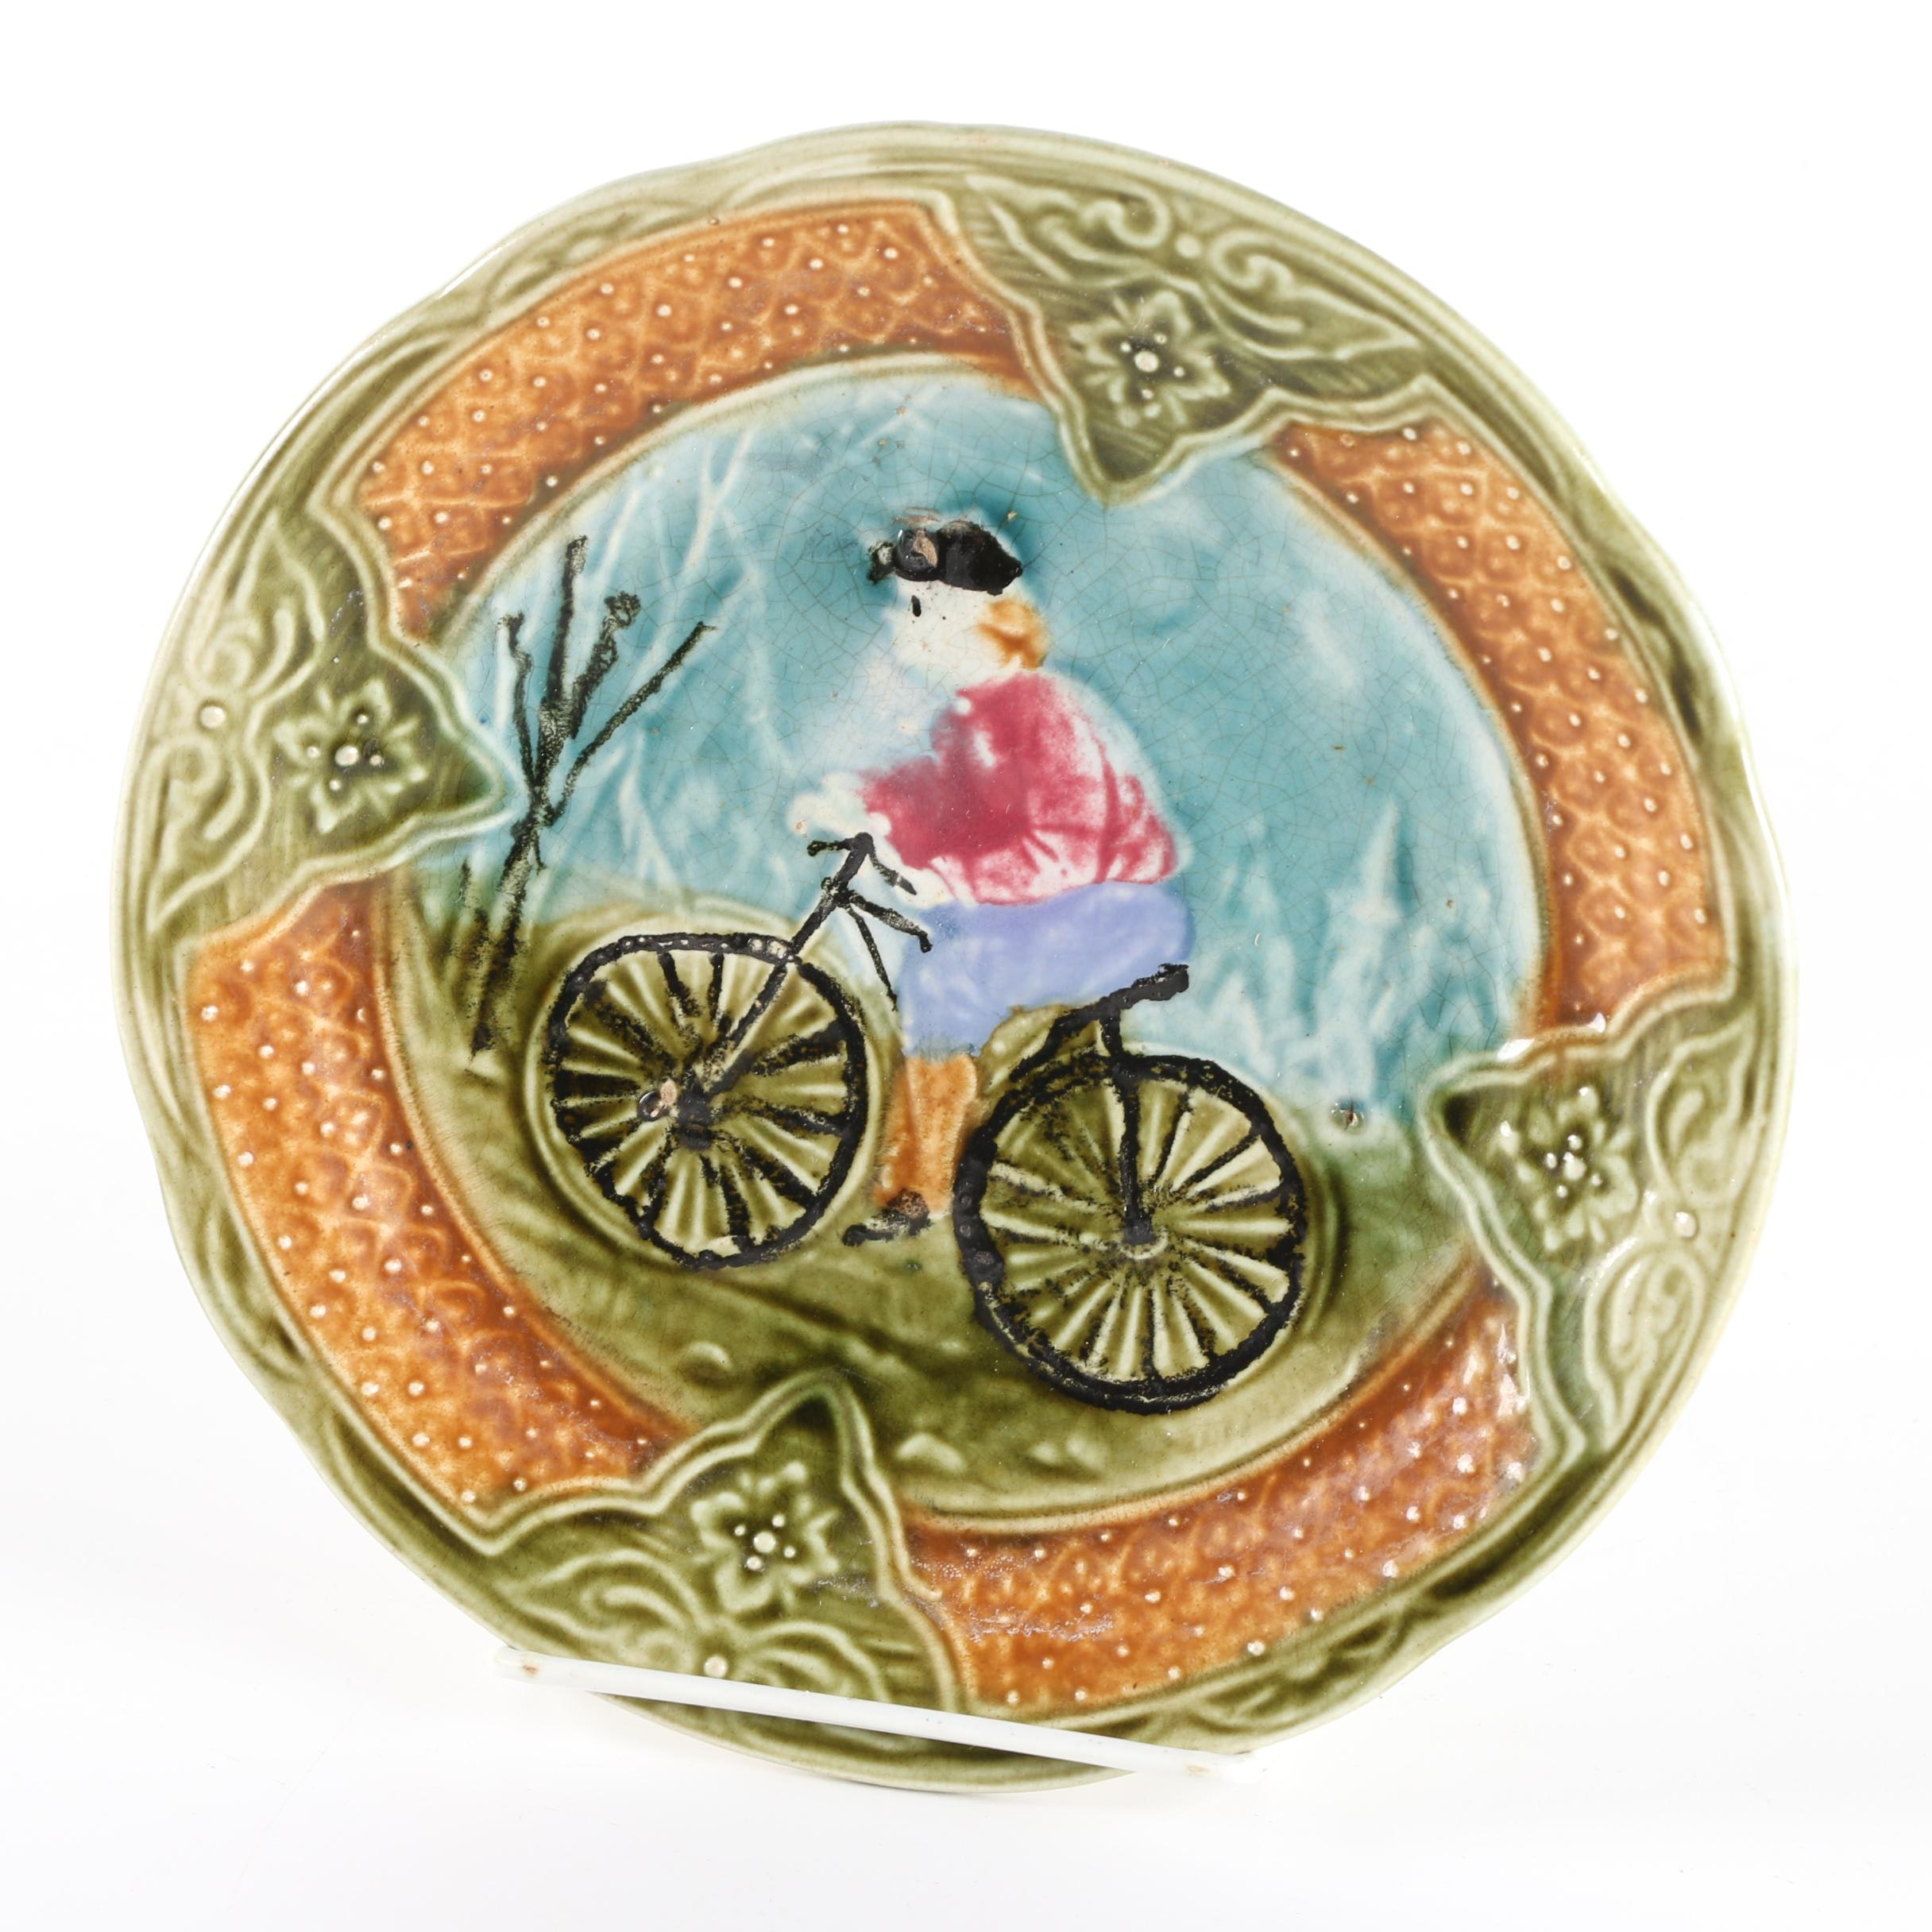 Antique French Majolica Plate with Bicyclist